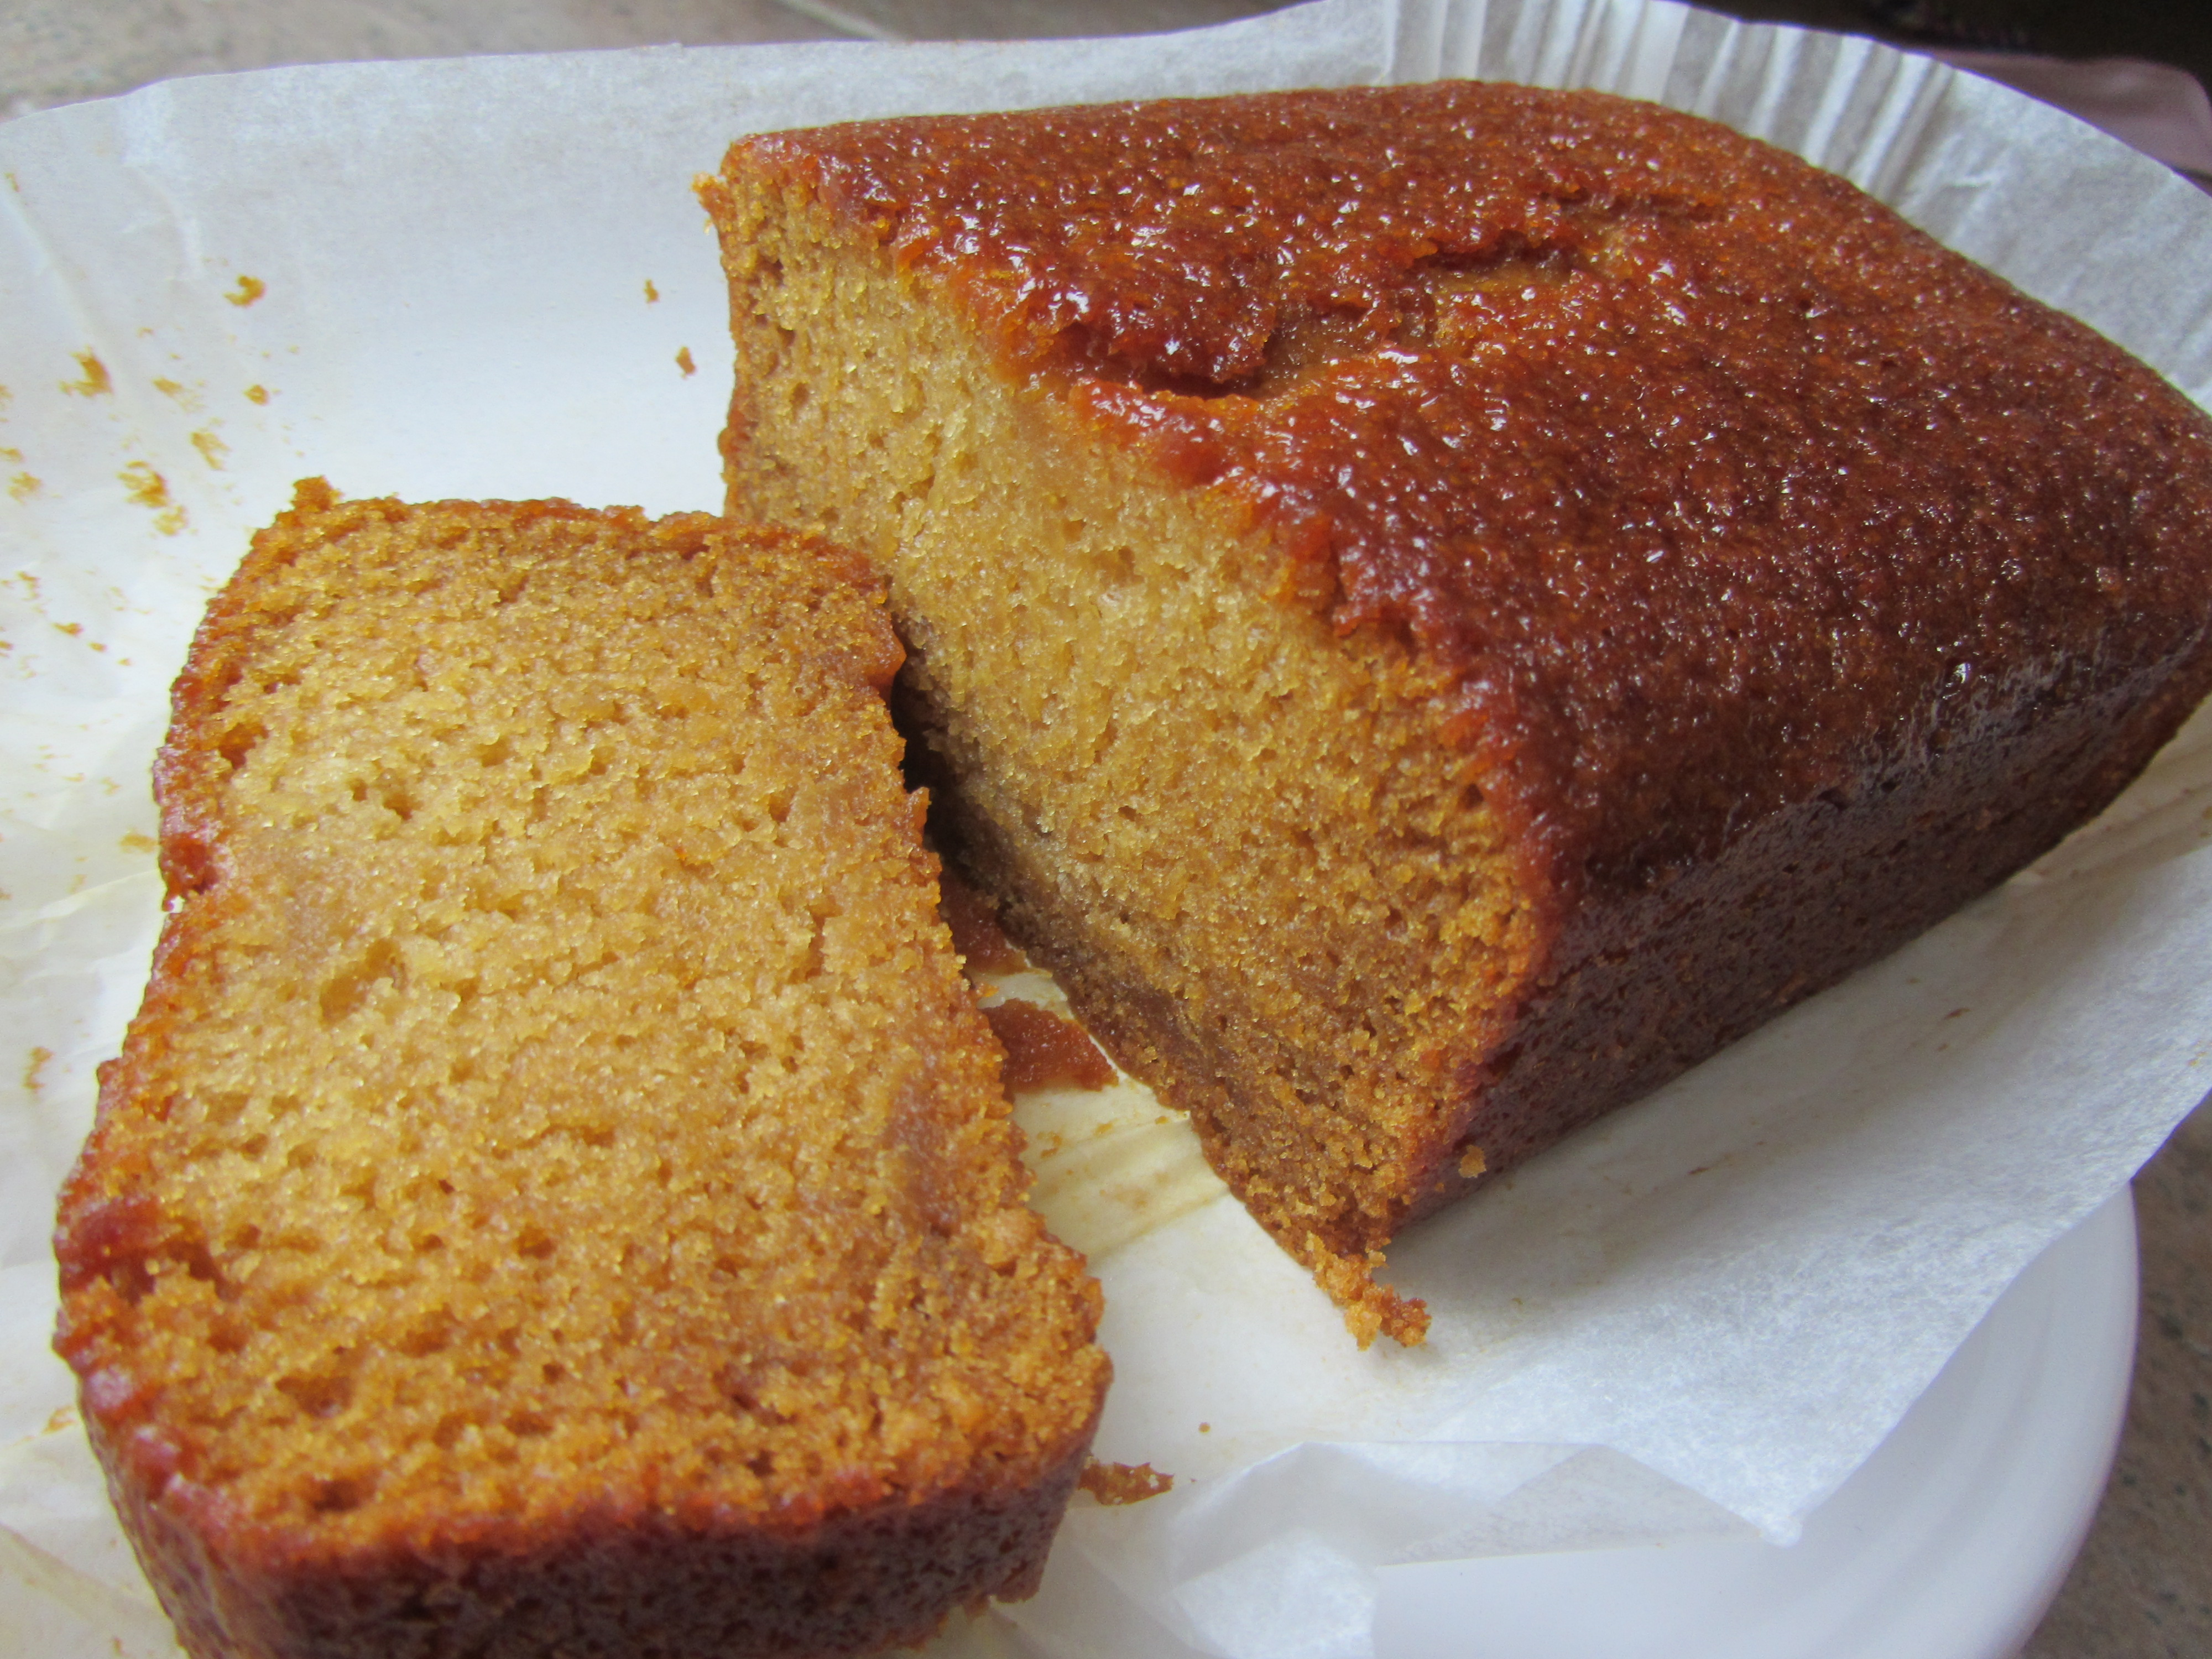 Egg Free Golden Syrup Cake